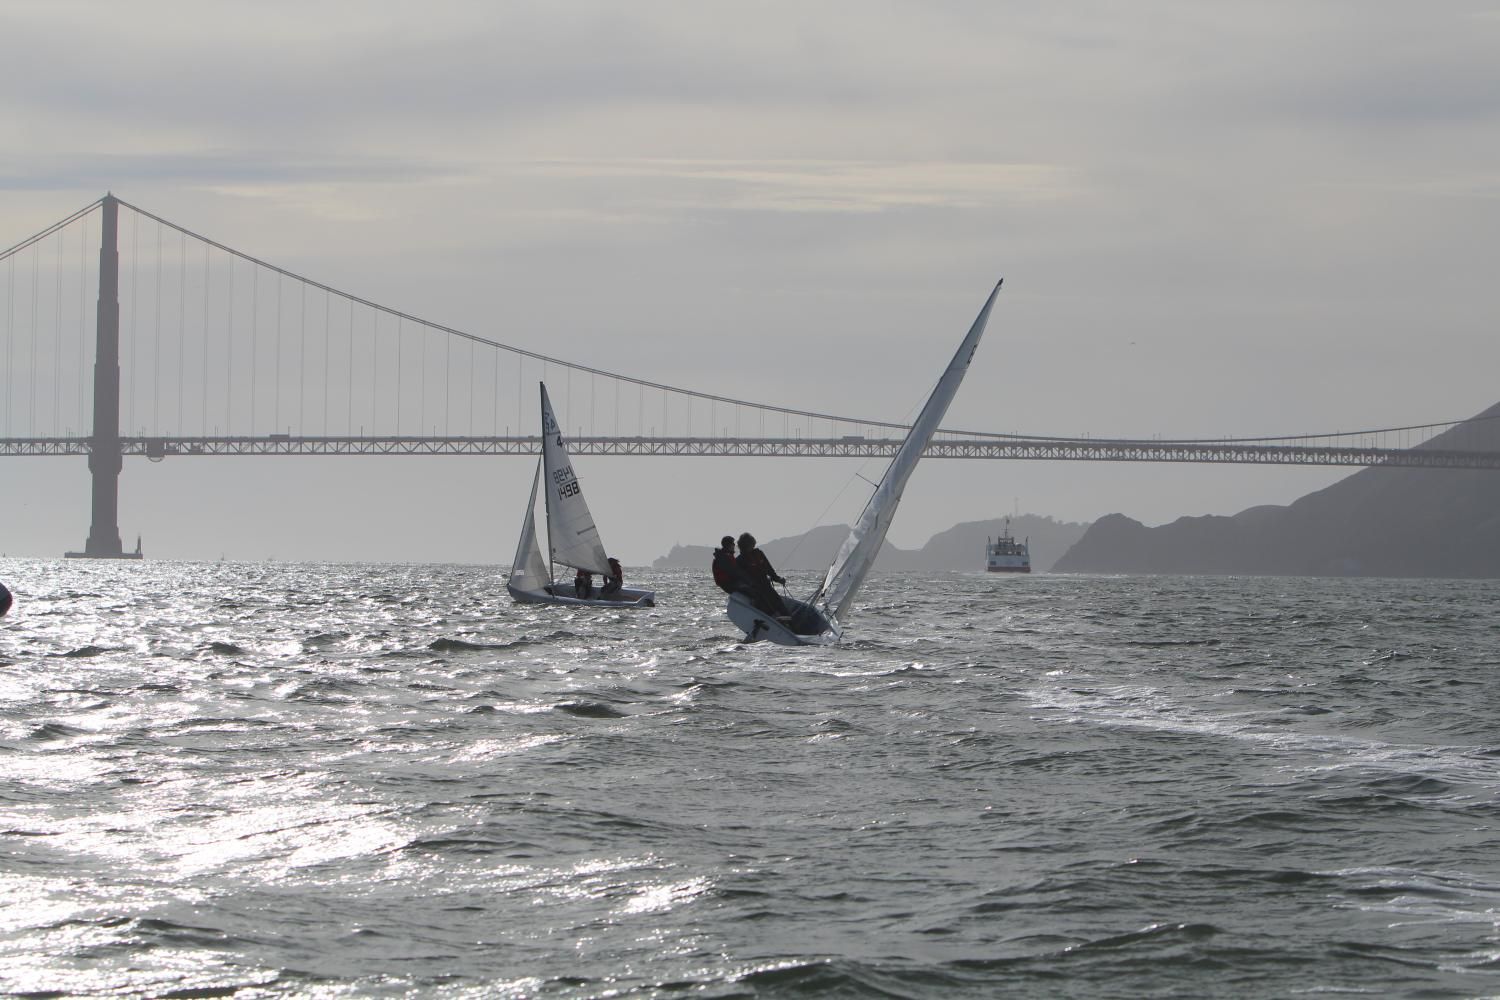 Convent+%26+Stuart+Hall+boat+sails+in+front+of+the+Golden+Gate+Bridge+during+practice+last+season.+The+team+practices+at+the+St.+Francis+Yacht+Club+on+the+bay.